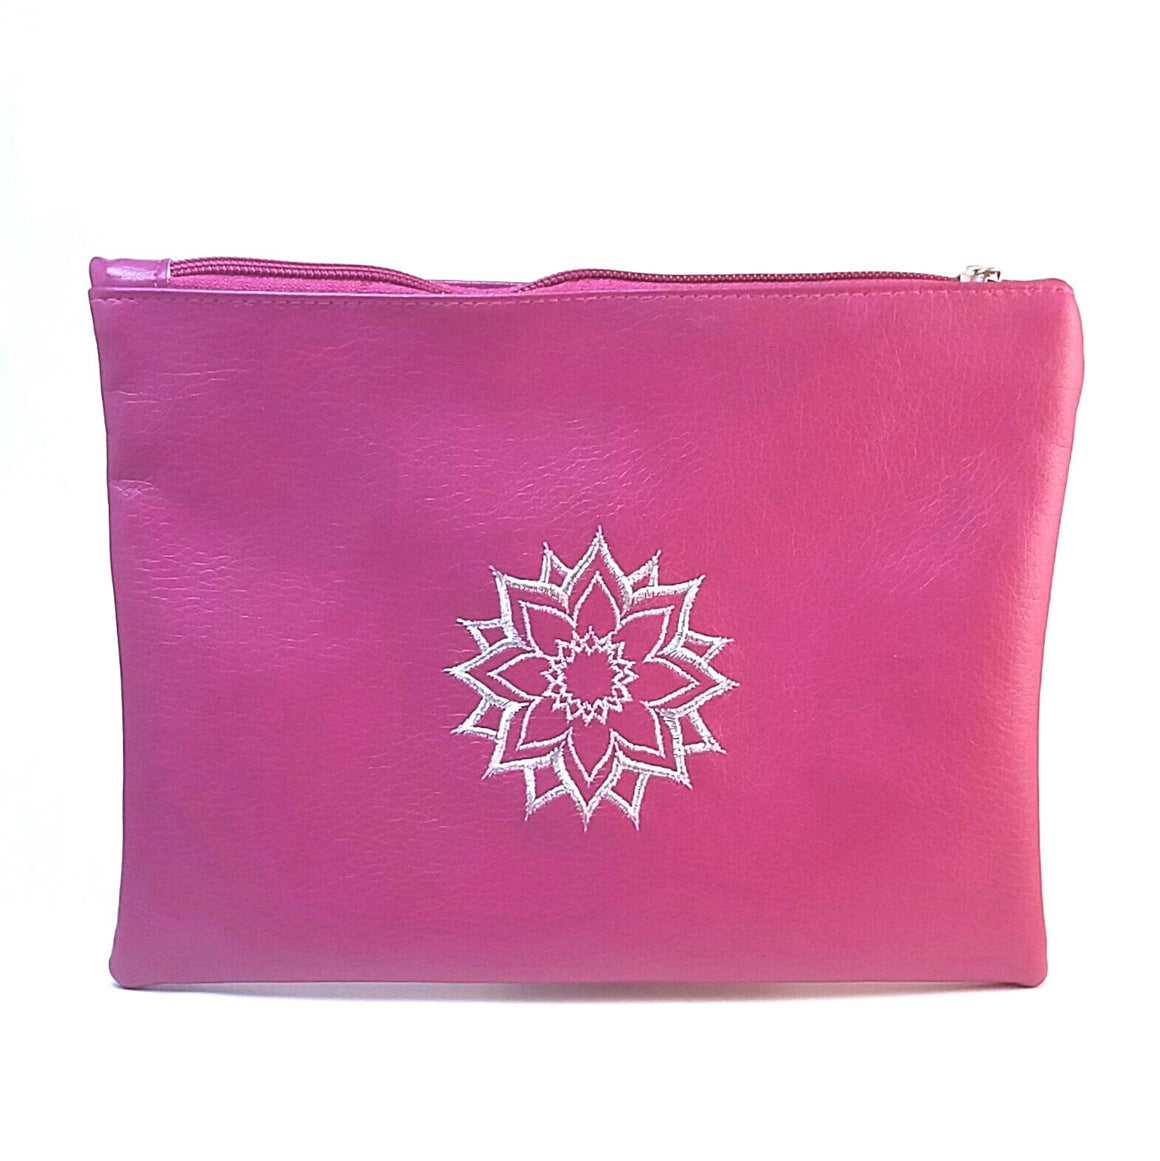 Rosé Artisanal Make Up Bag